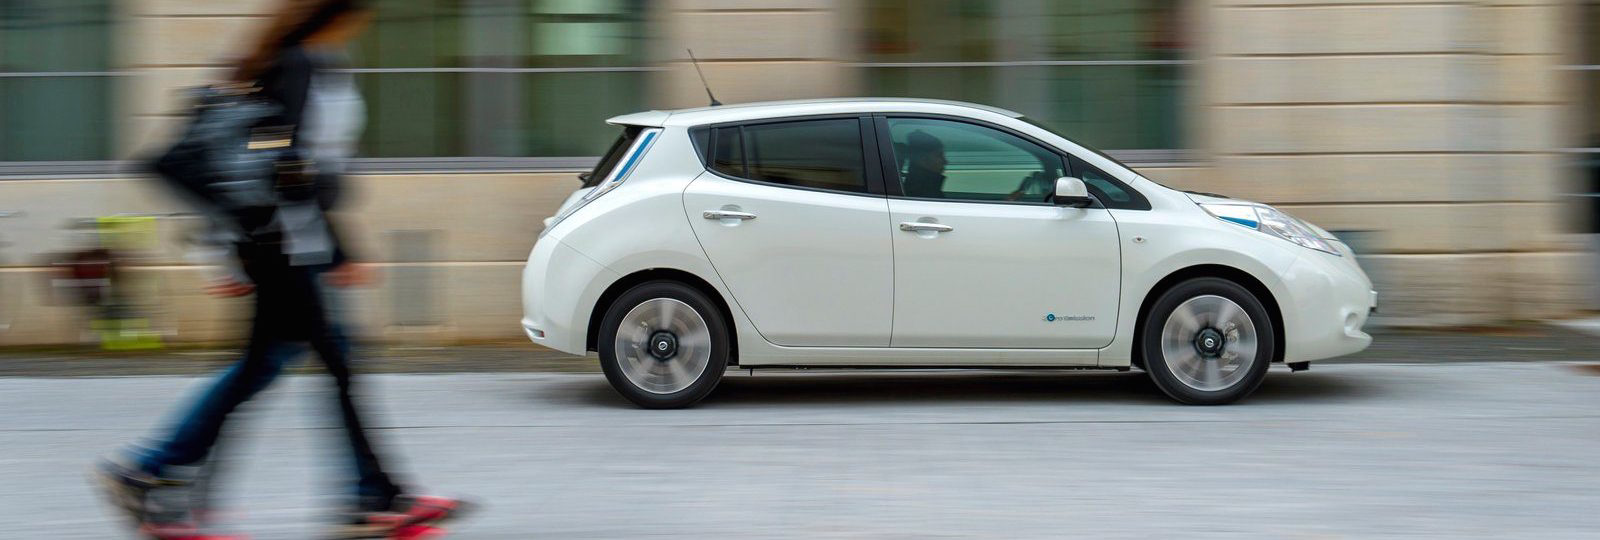 xnissan-leaf-1600x540.png,qoriginalExtension=jpg.pagespeed.ic.tIz-90xttQ.jpg